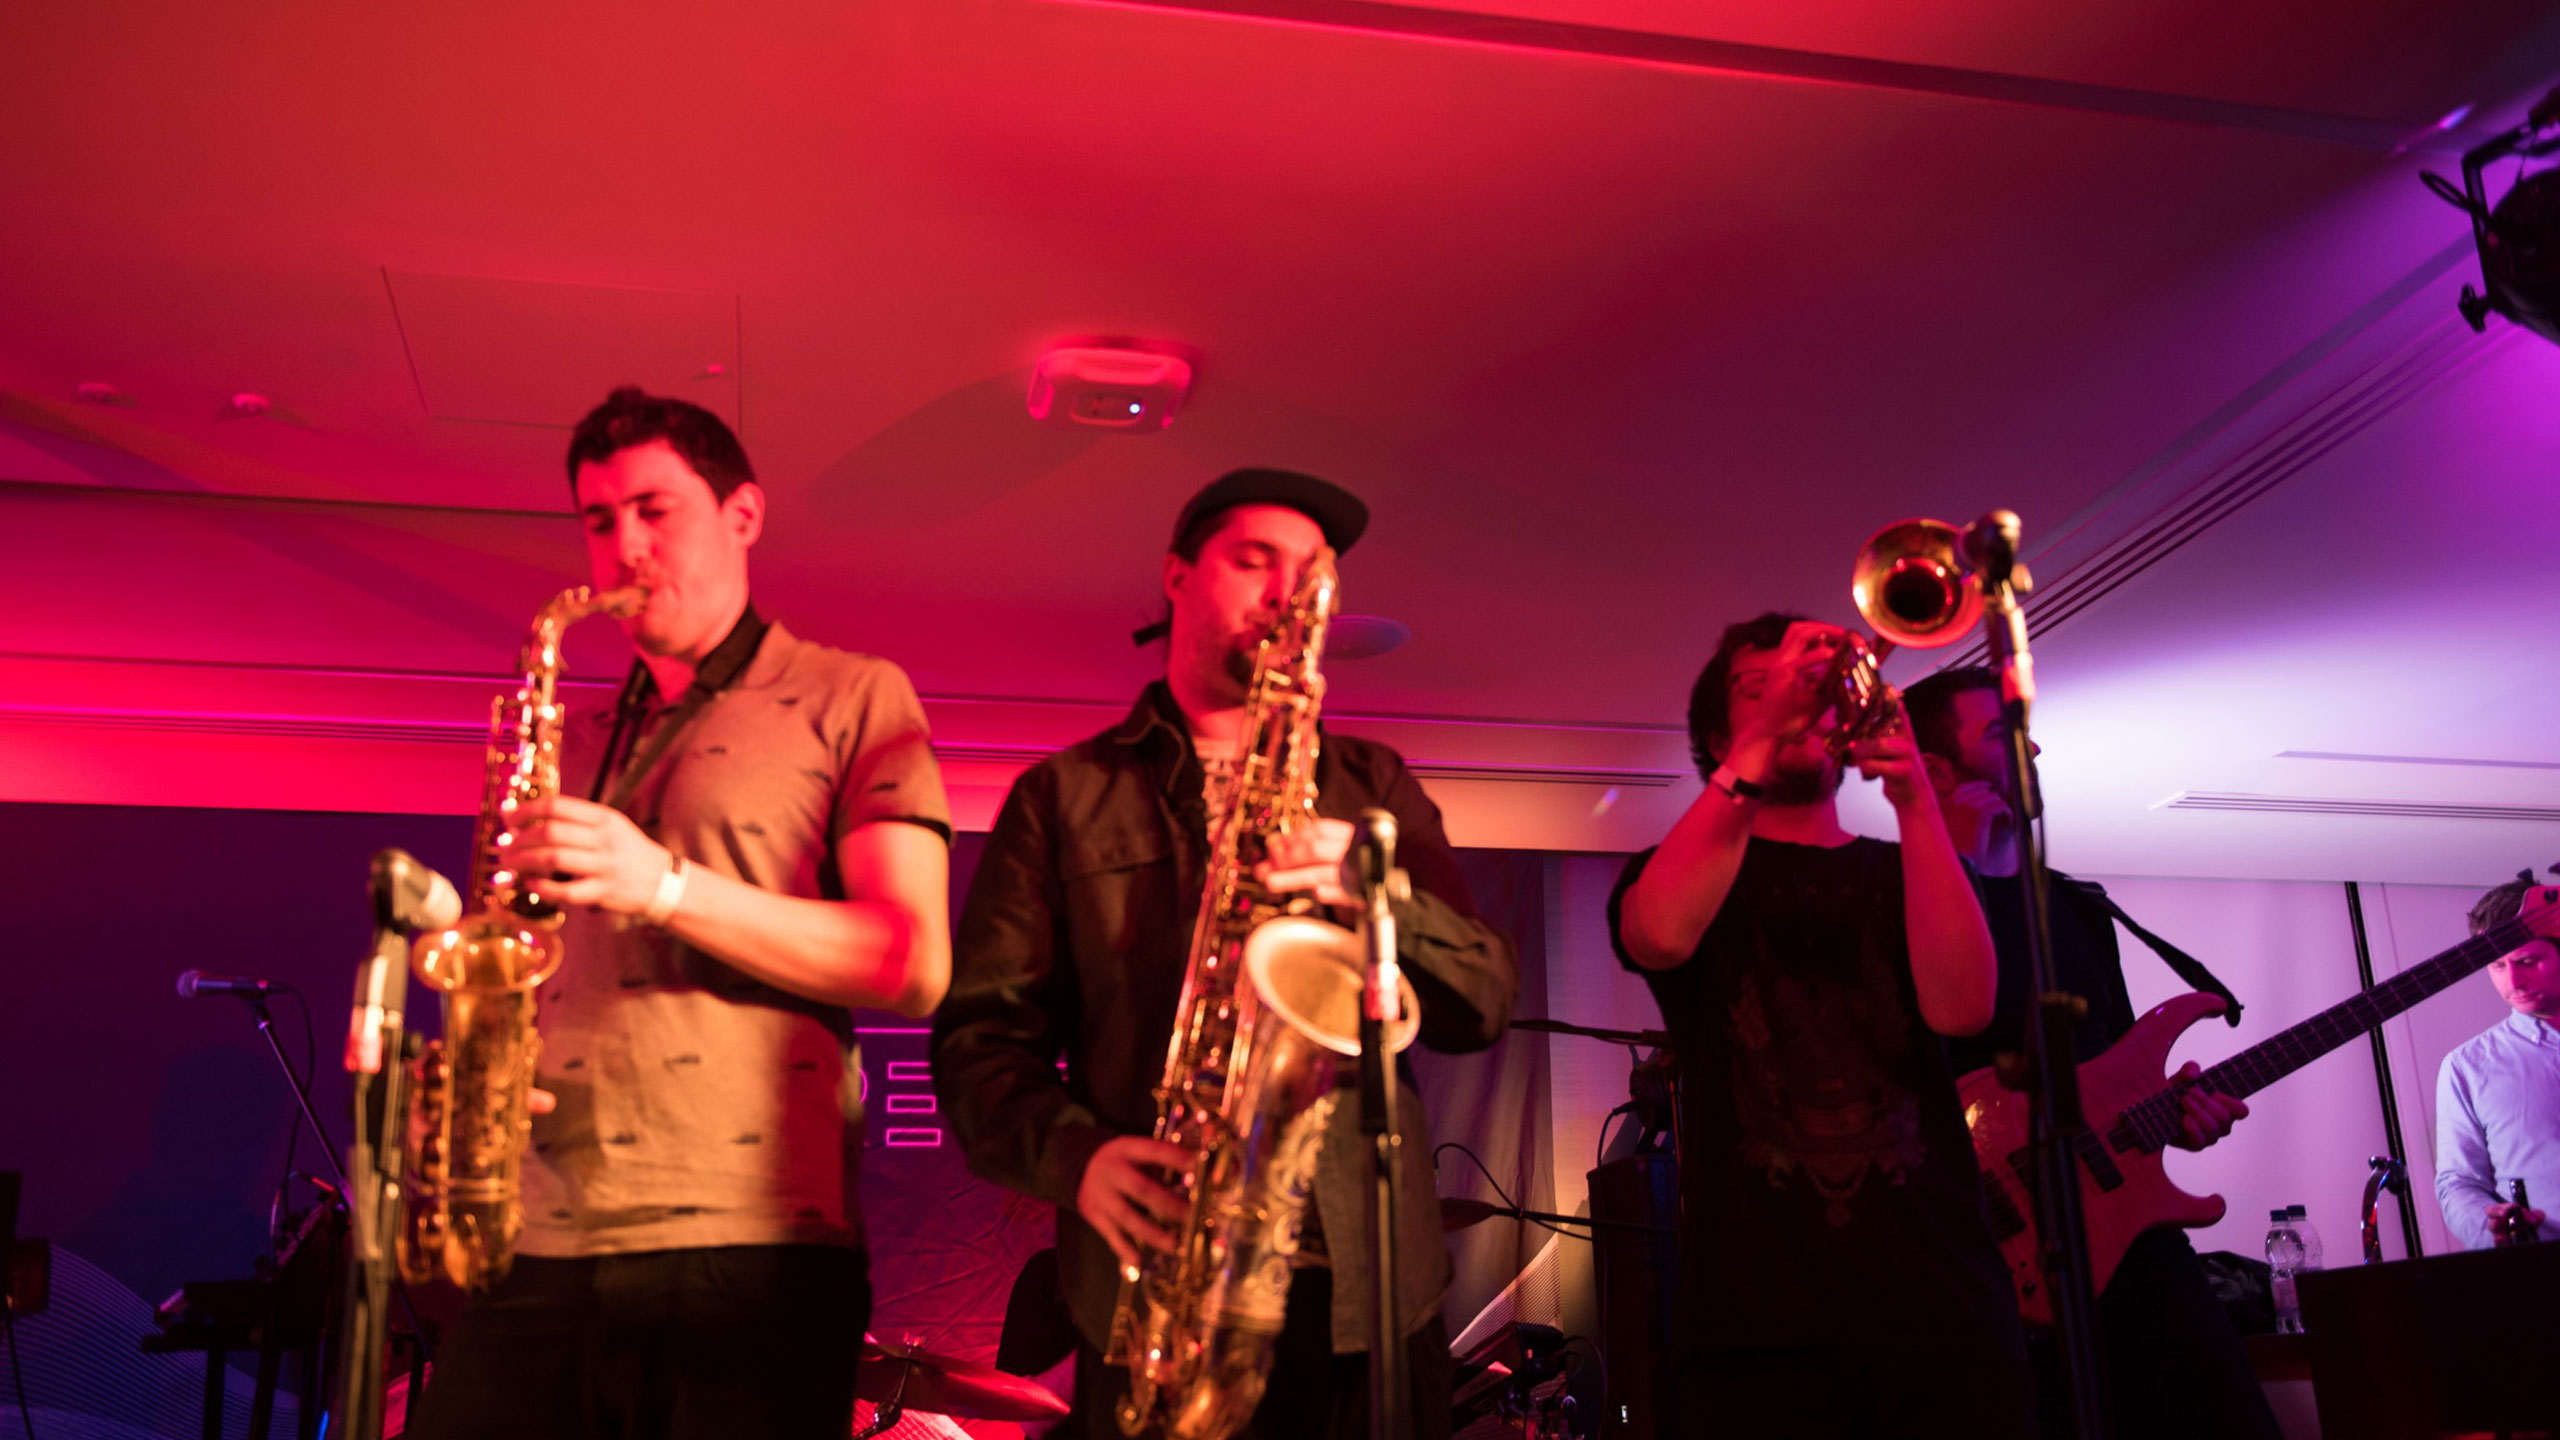 Two saxophonists and a trumpeter from Dr Meaker perform live at PRS for Music Presents